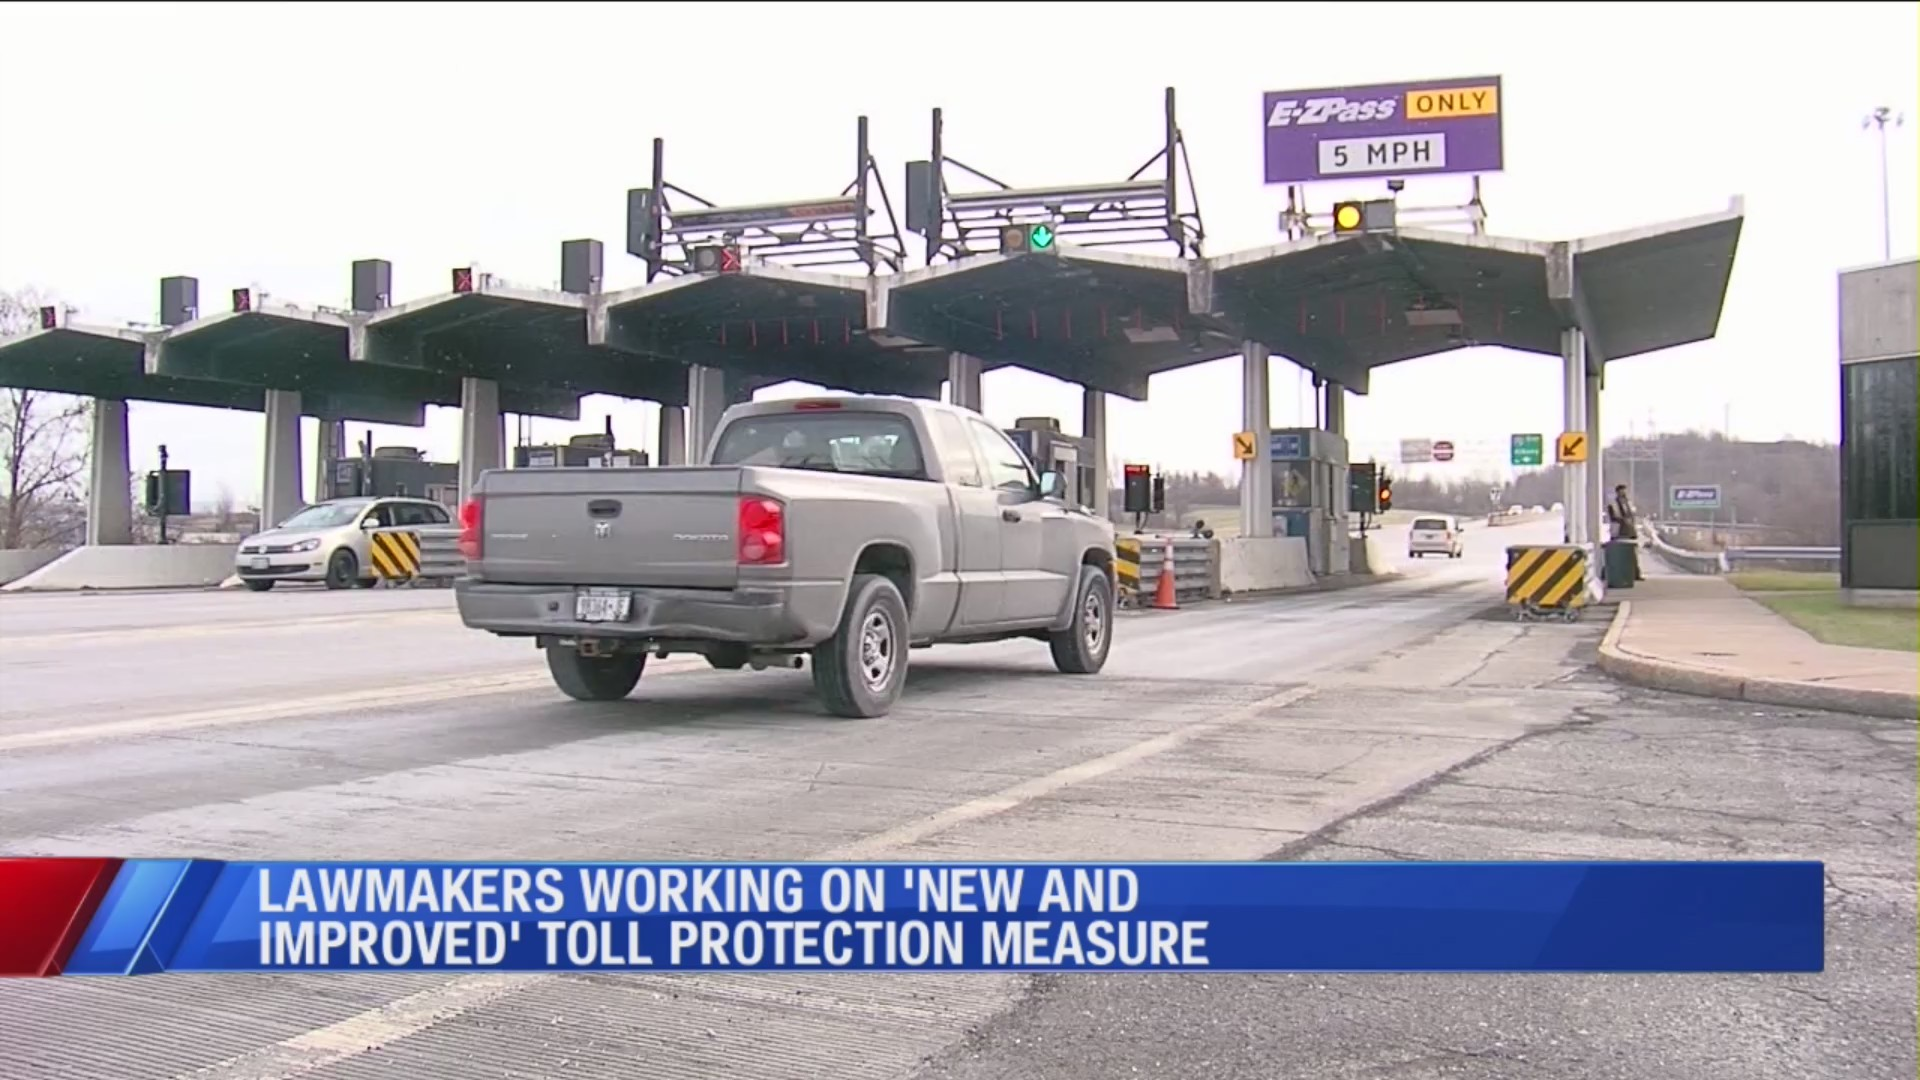 Lawmakers_working_on_toll_protection_mea_0_20190506140631